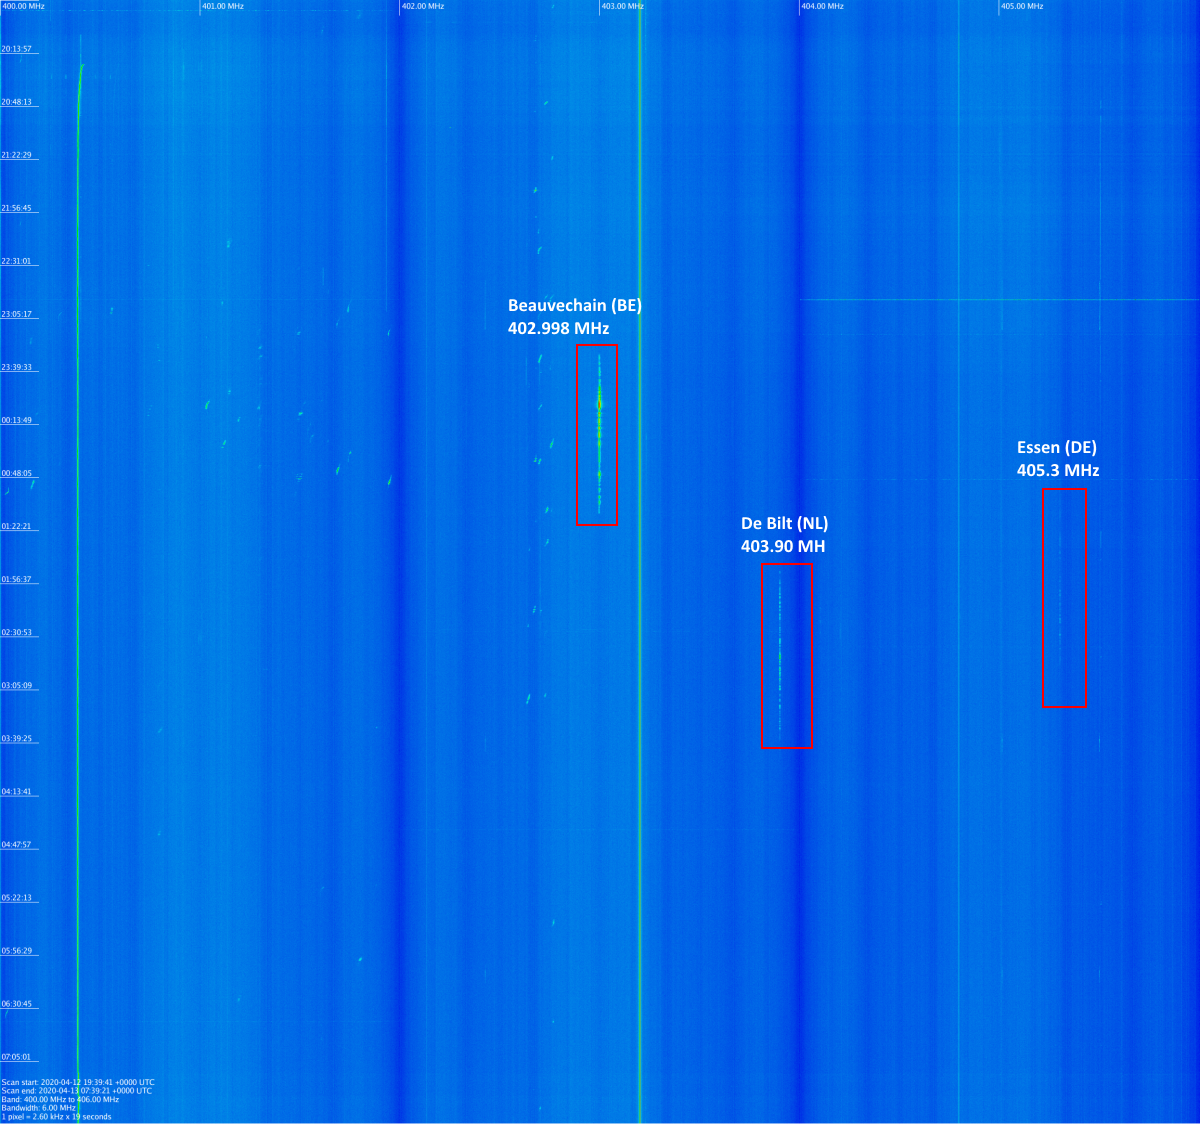 Bandscan Image from the last 12 hours with 3 sondes